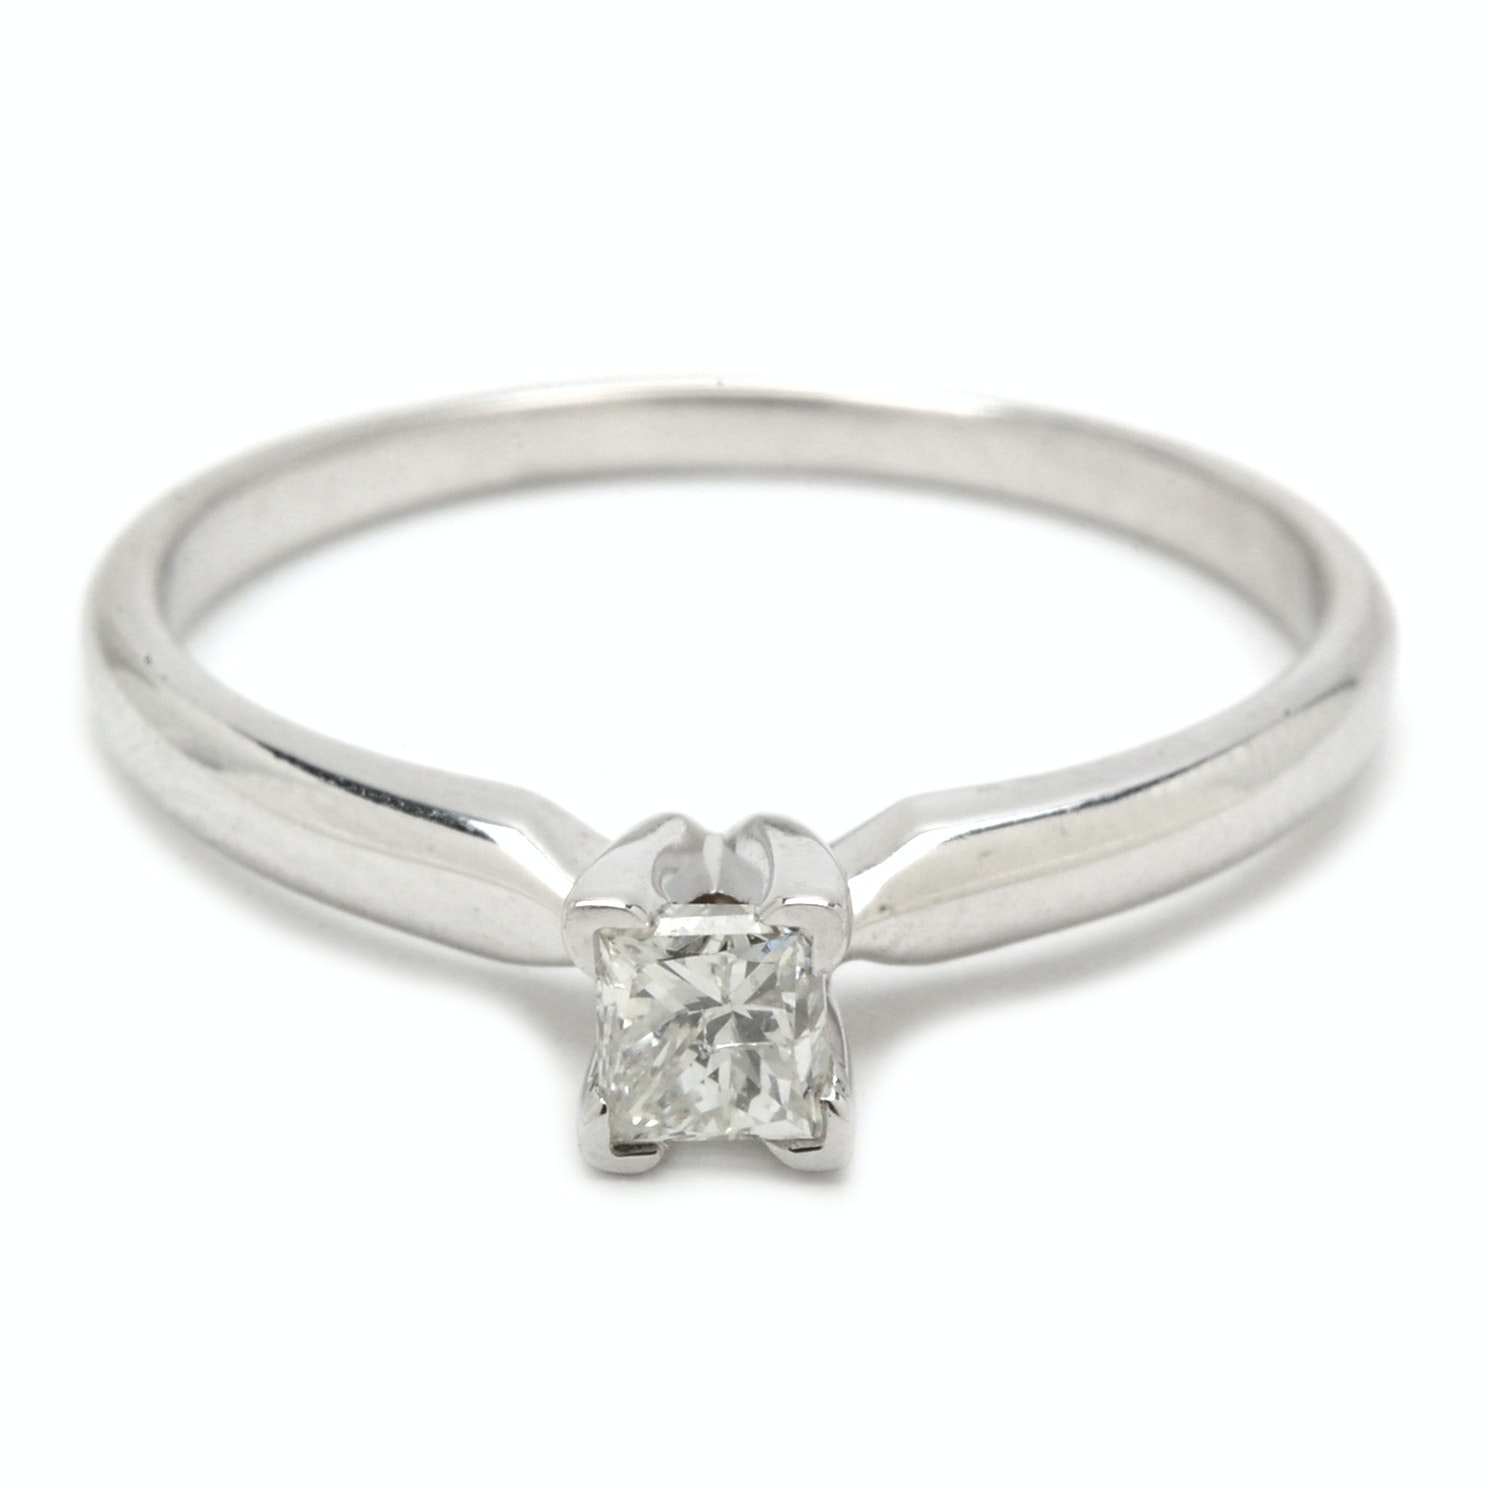 14K White Gold Princess Cut Diamond Solitaire Ring